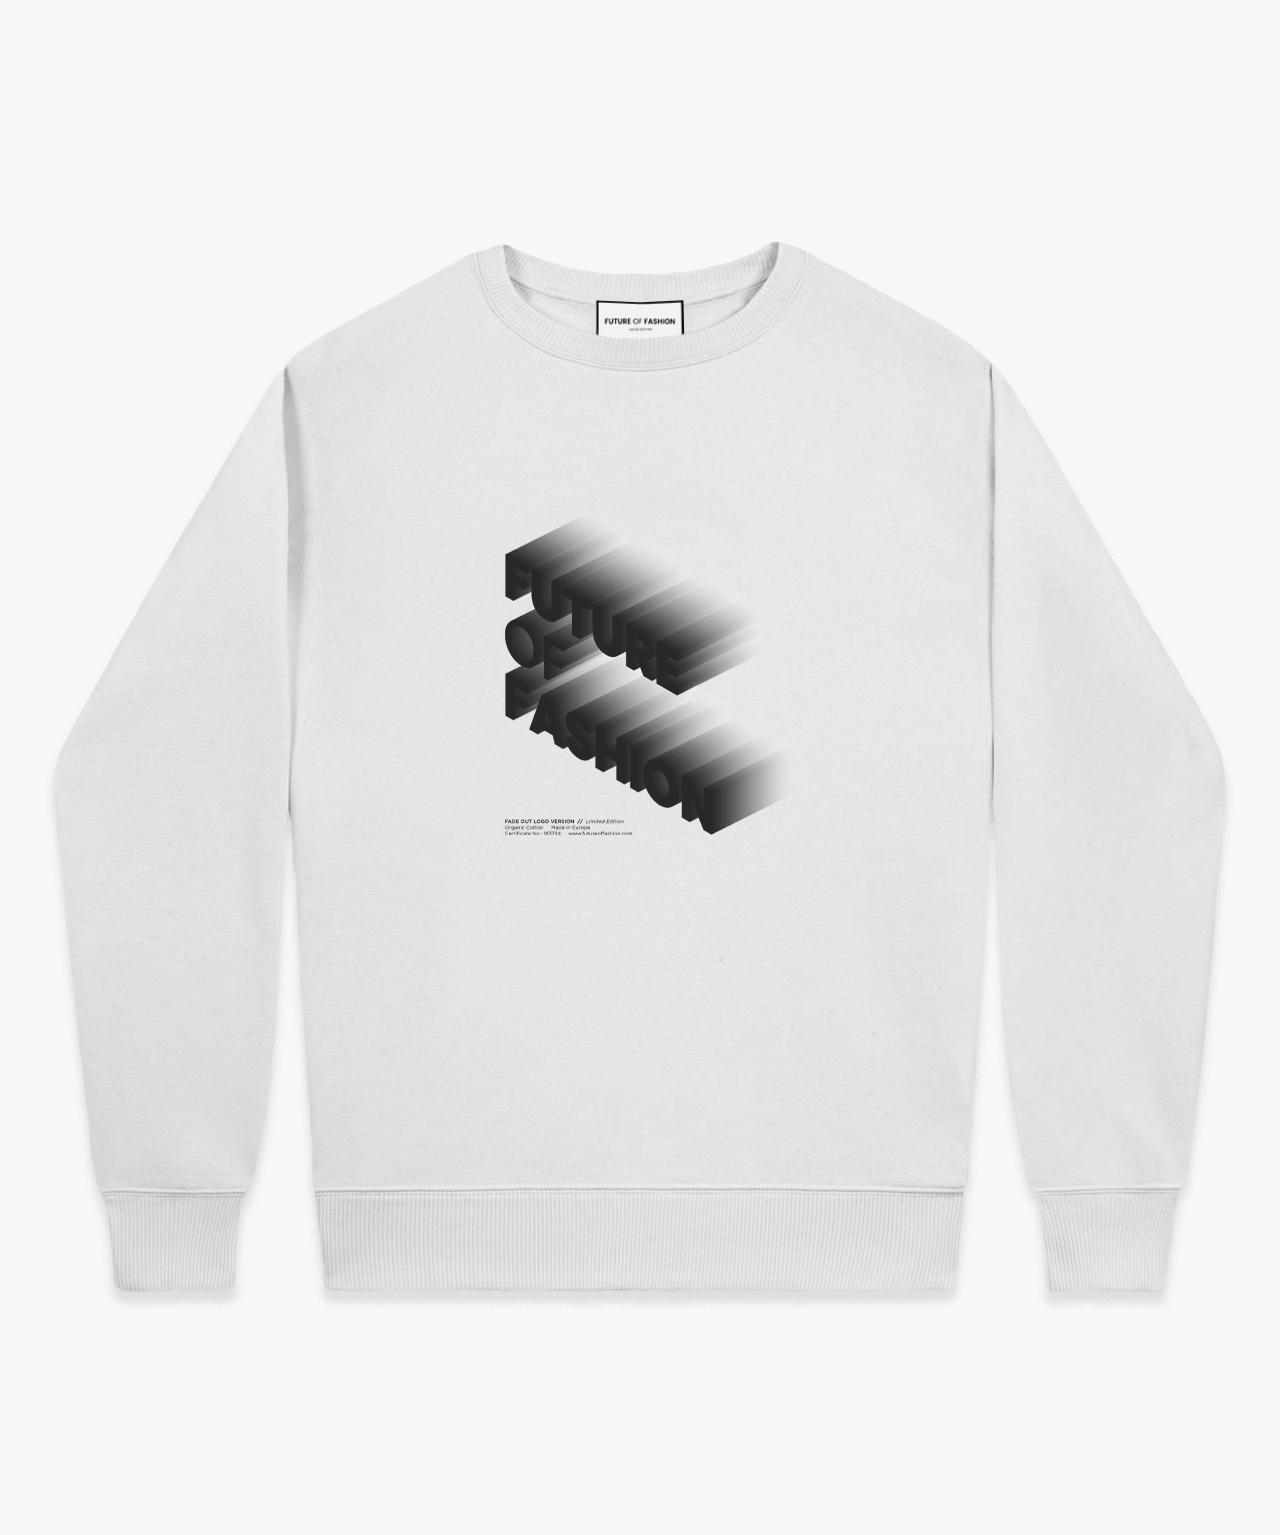 Fade Out Sweatshirt 21